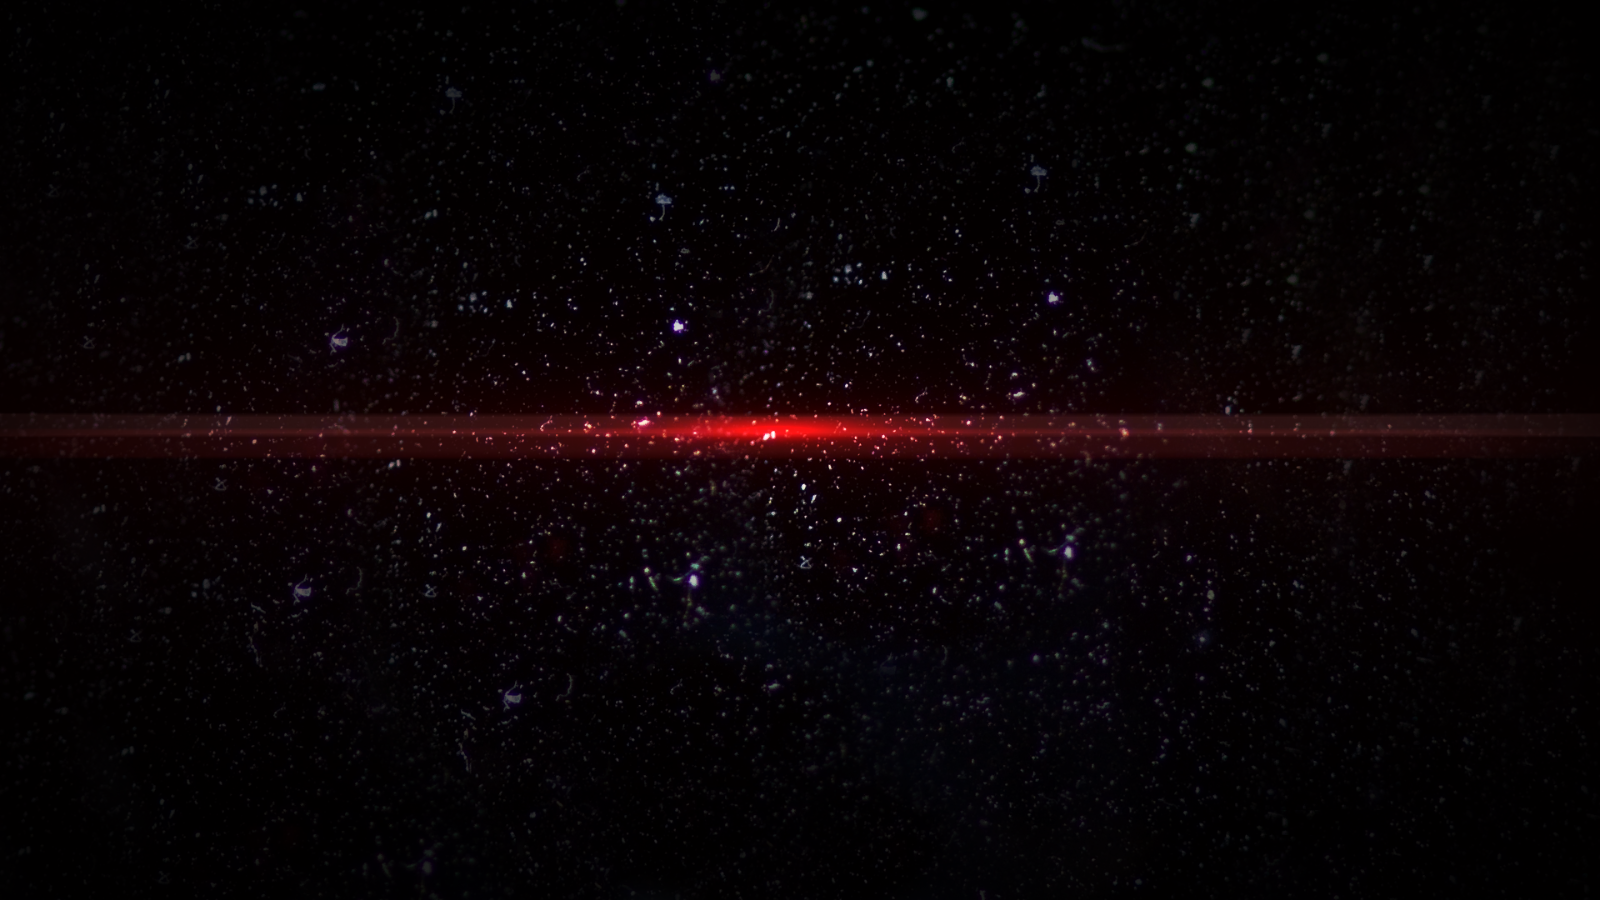 Red Optical Flare images